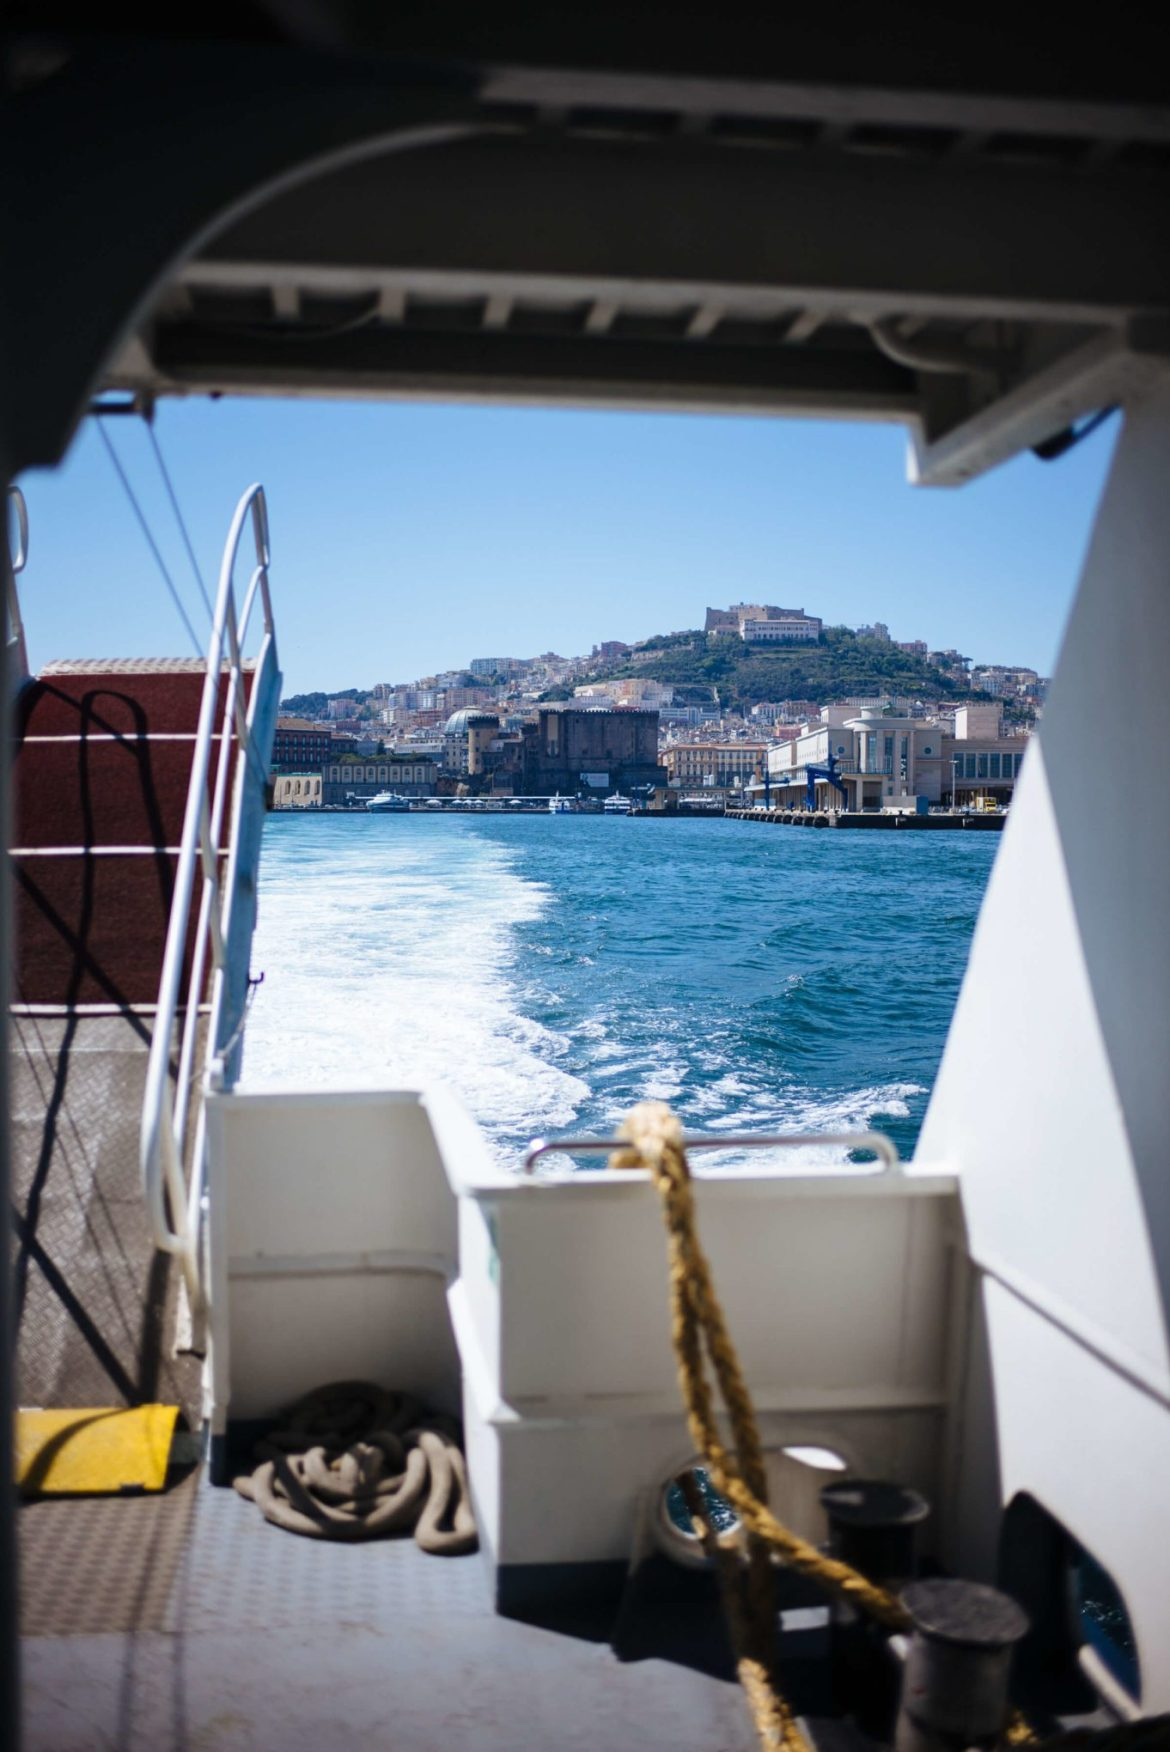 How to Get to The Amalfi Coast? The Taste Edit recommends taking a boat for the easiest way to get to the Amalfi Coast. Take a high speed ferry from Naples to Capri,Procida, Sorrento, or Ischia